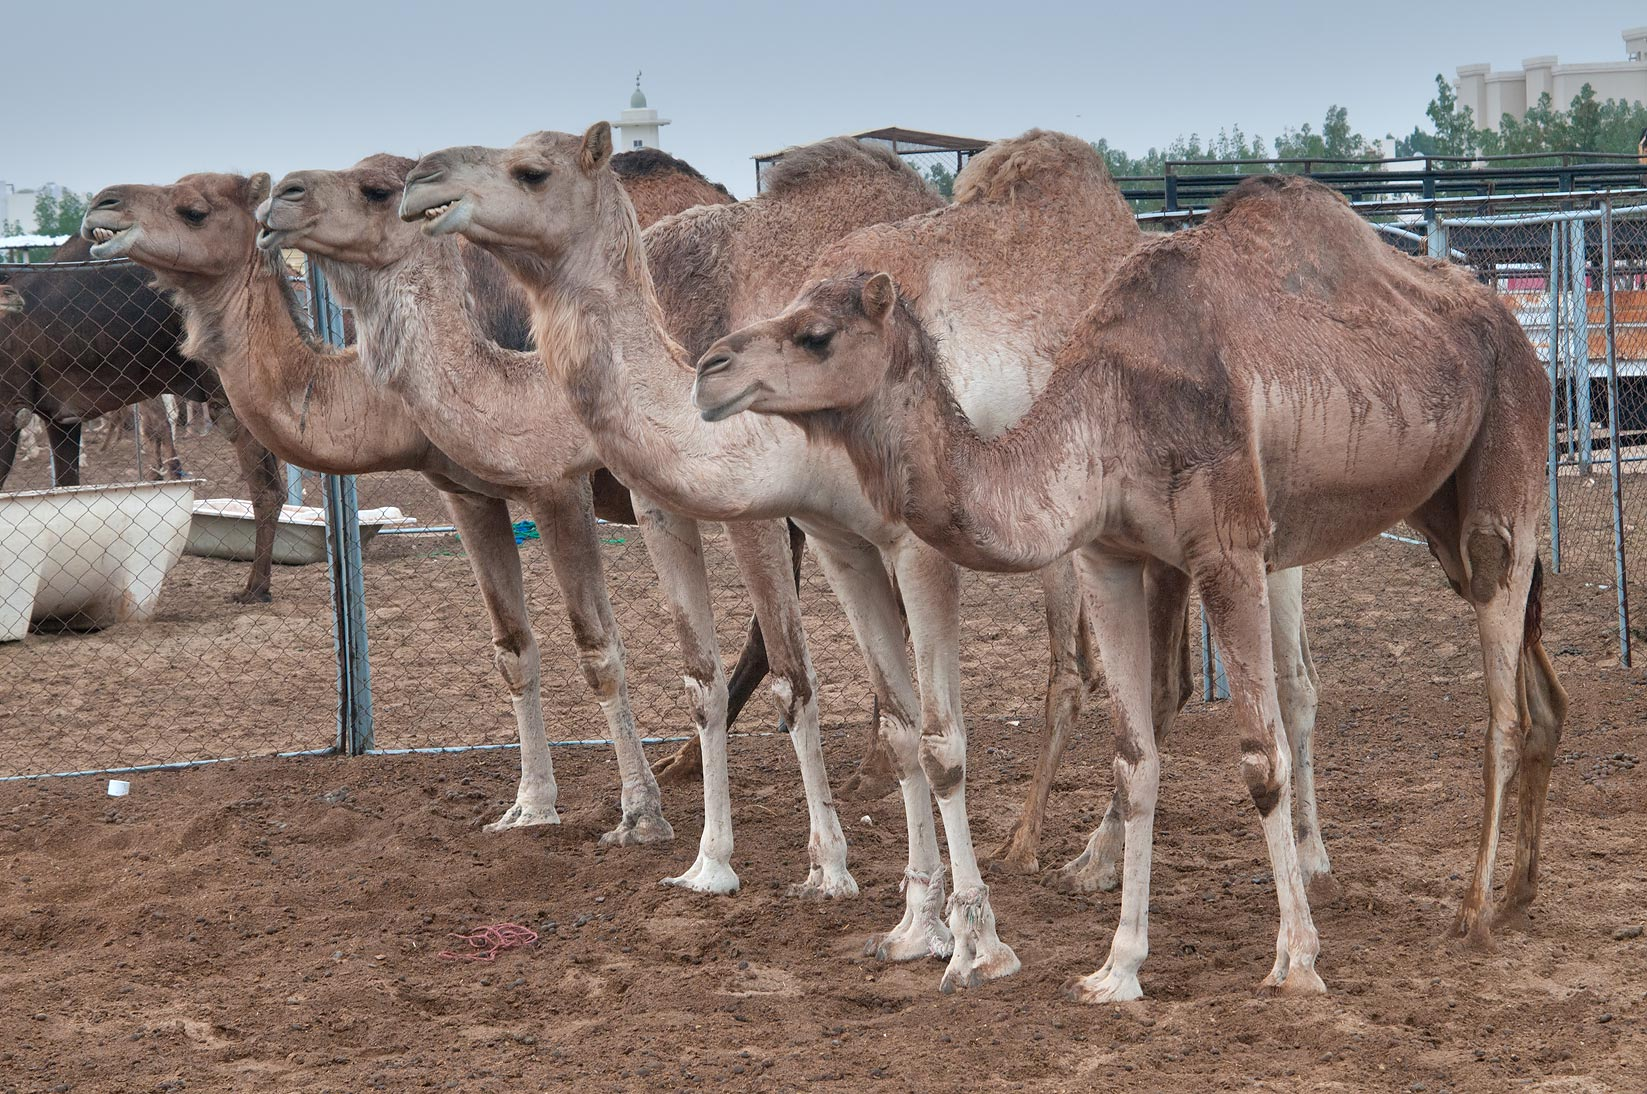 Row of camels looking forward in Camel Market, Wholesale Markets area. Doha, Qatar